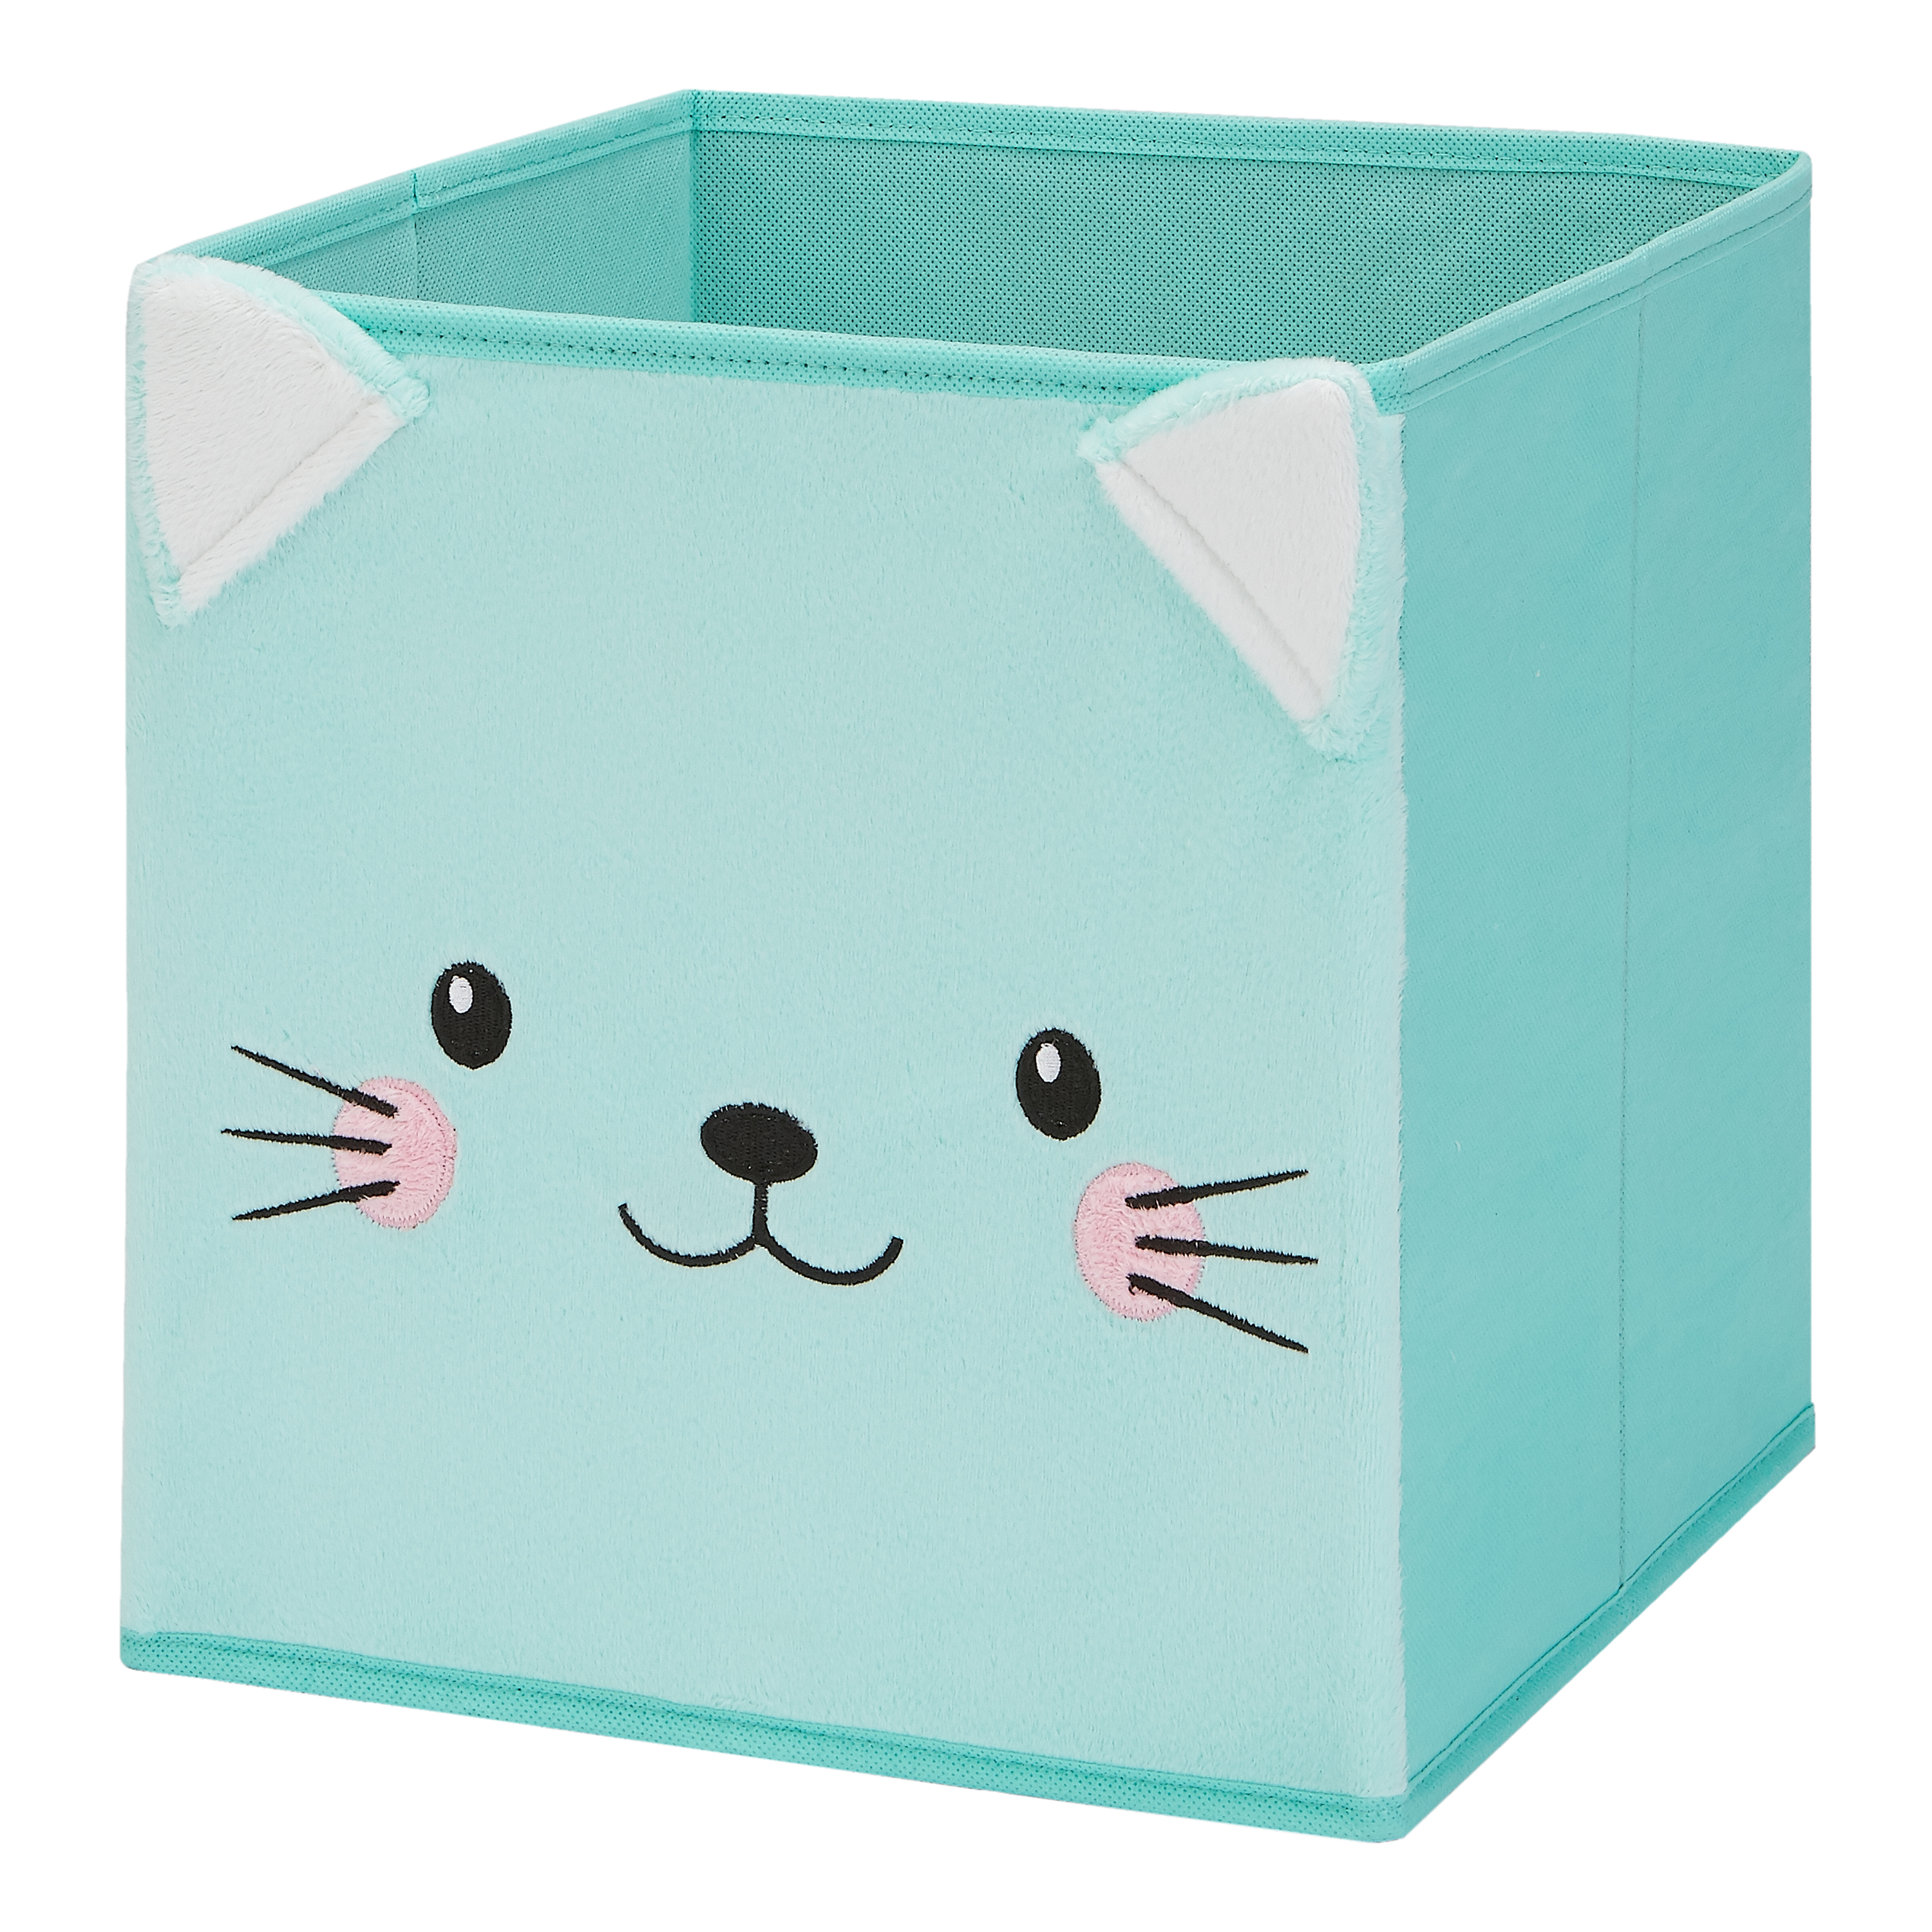 "Mainstays Kids Collapsible Storage Fabric Bin, Cat, Mint, 10.5"" x 10.5"" x 11"""